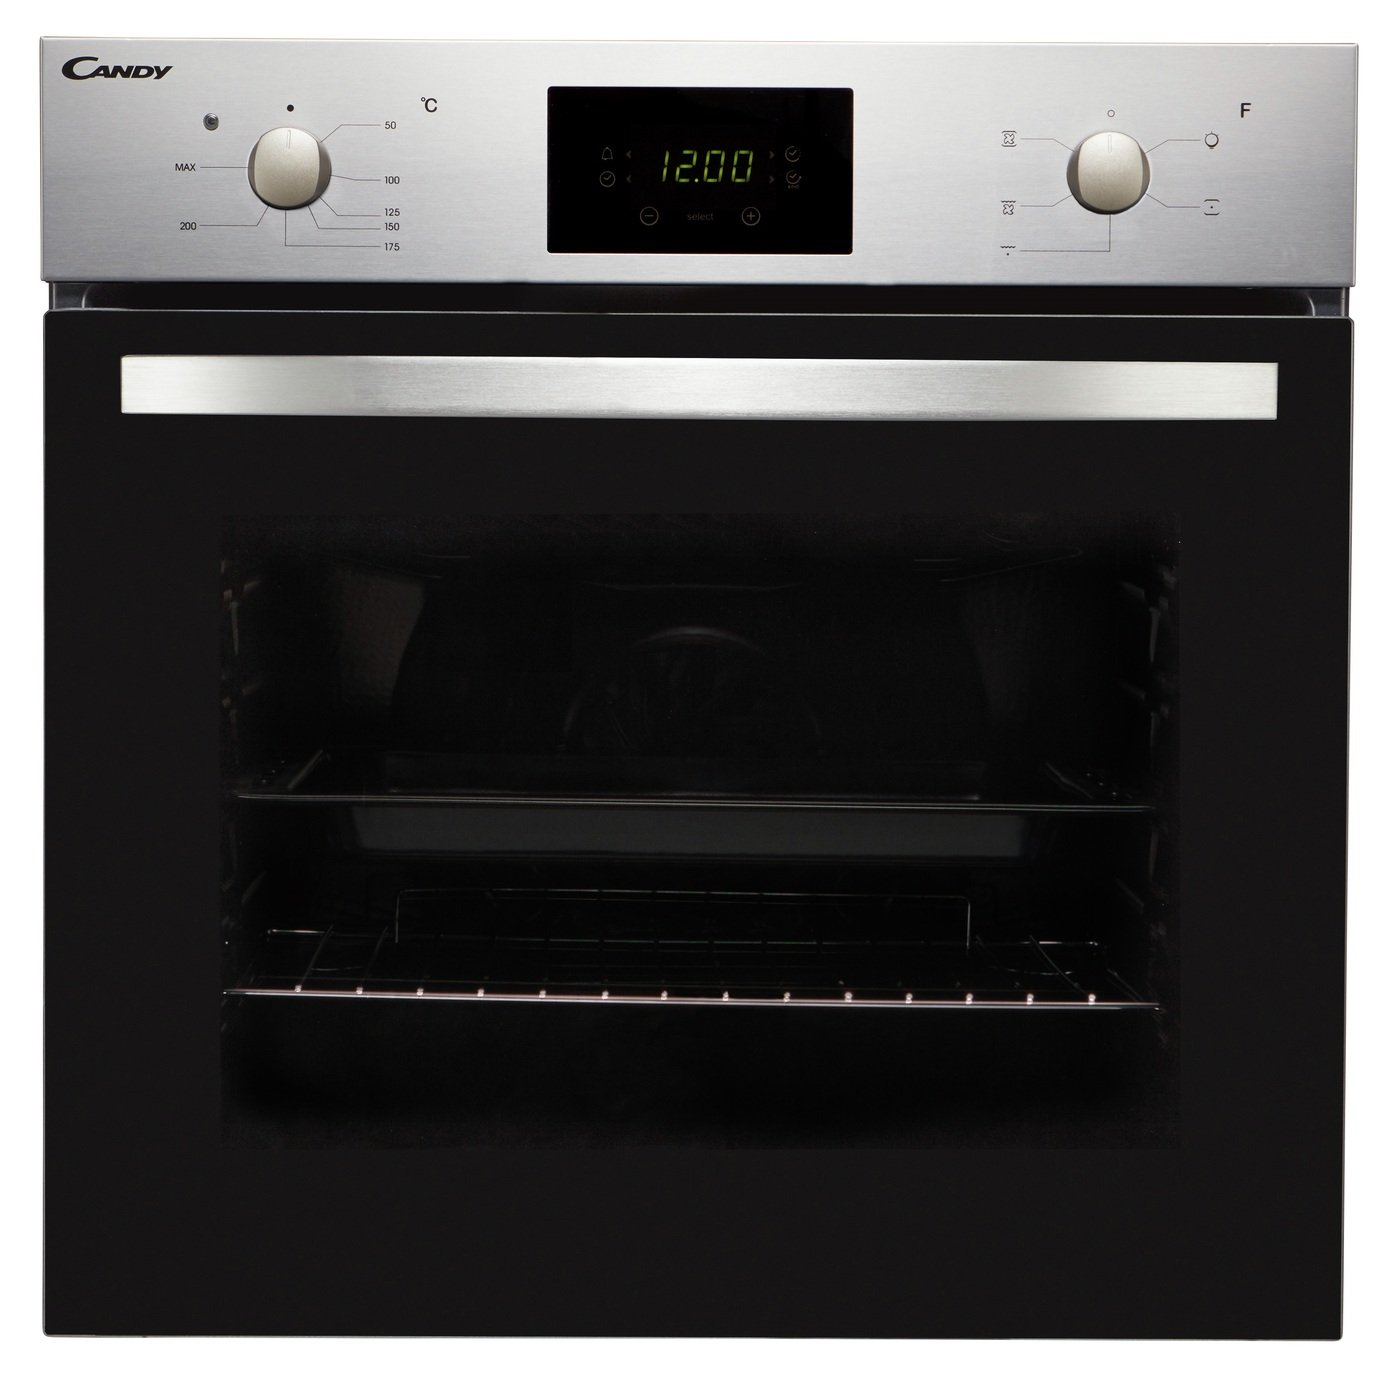 Candy FCS605X/E Single Multifunction Oven - Stainless Steel